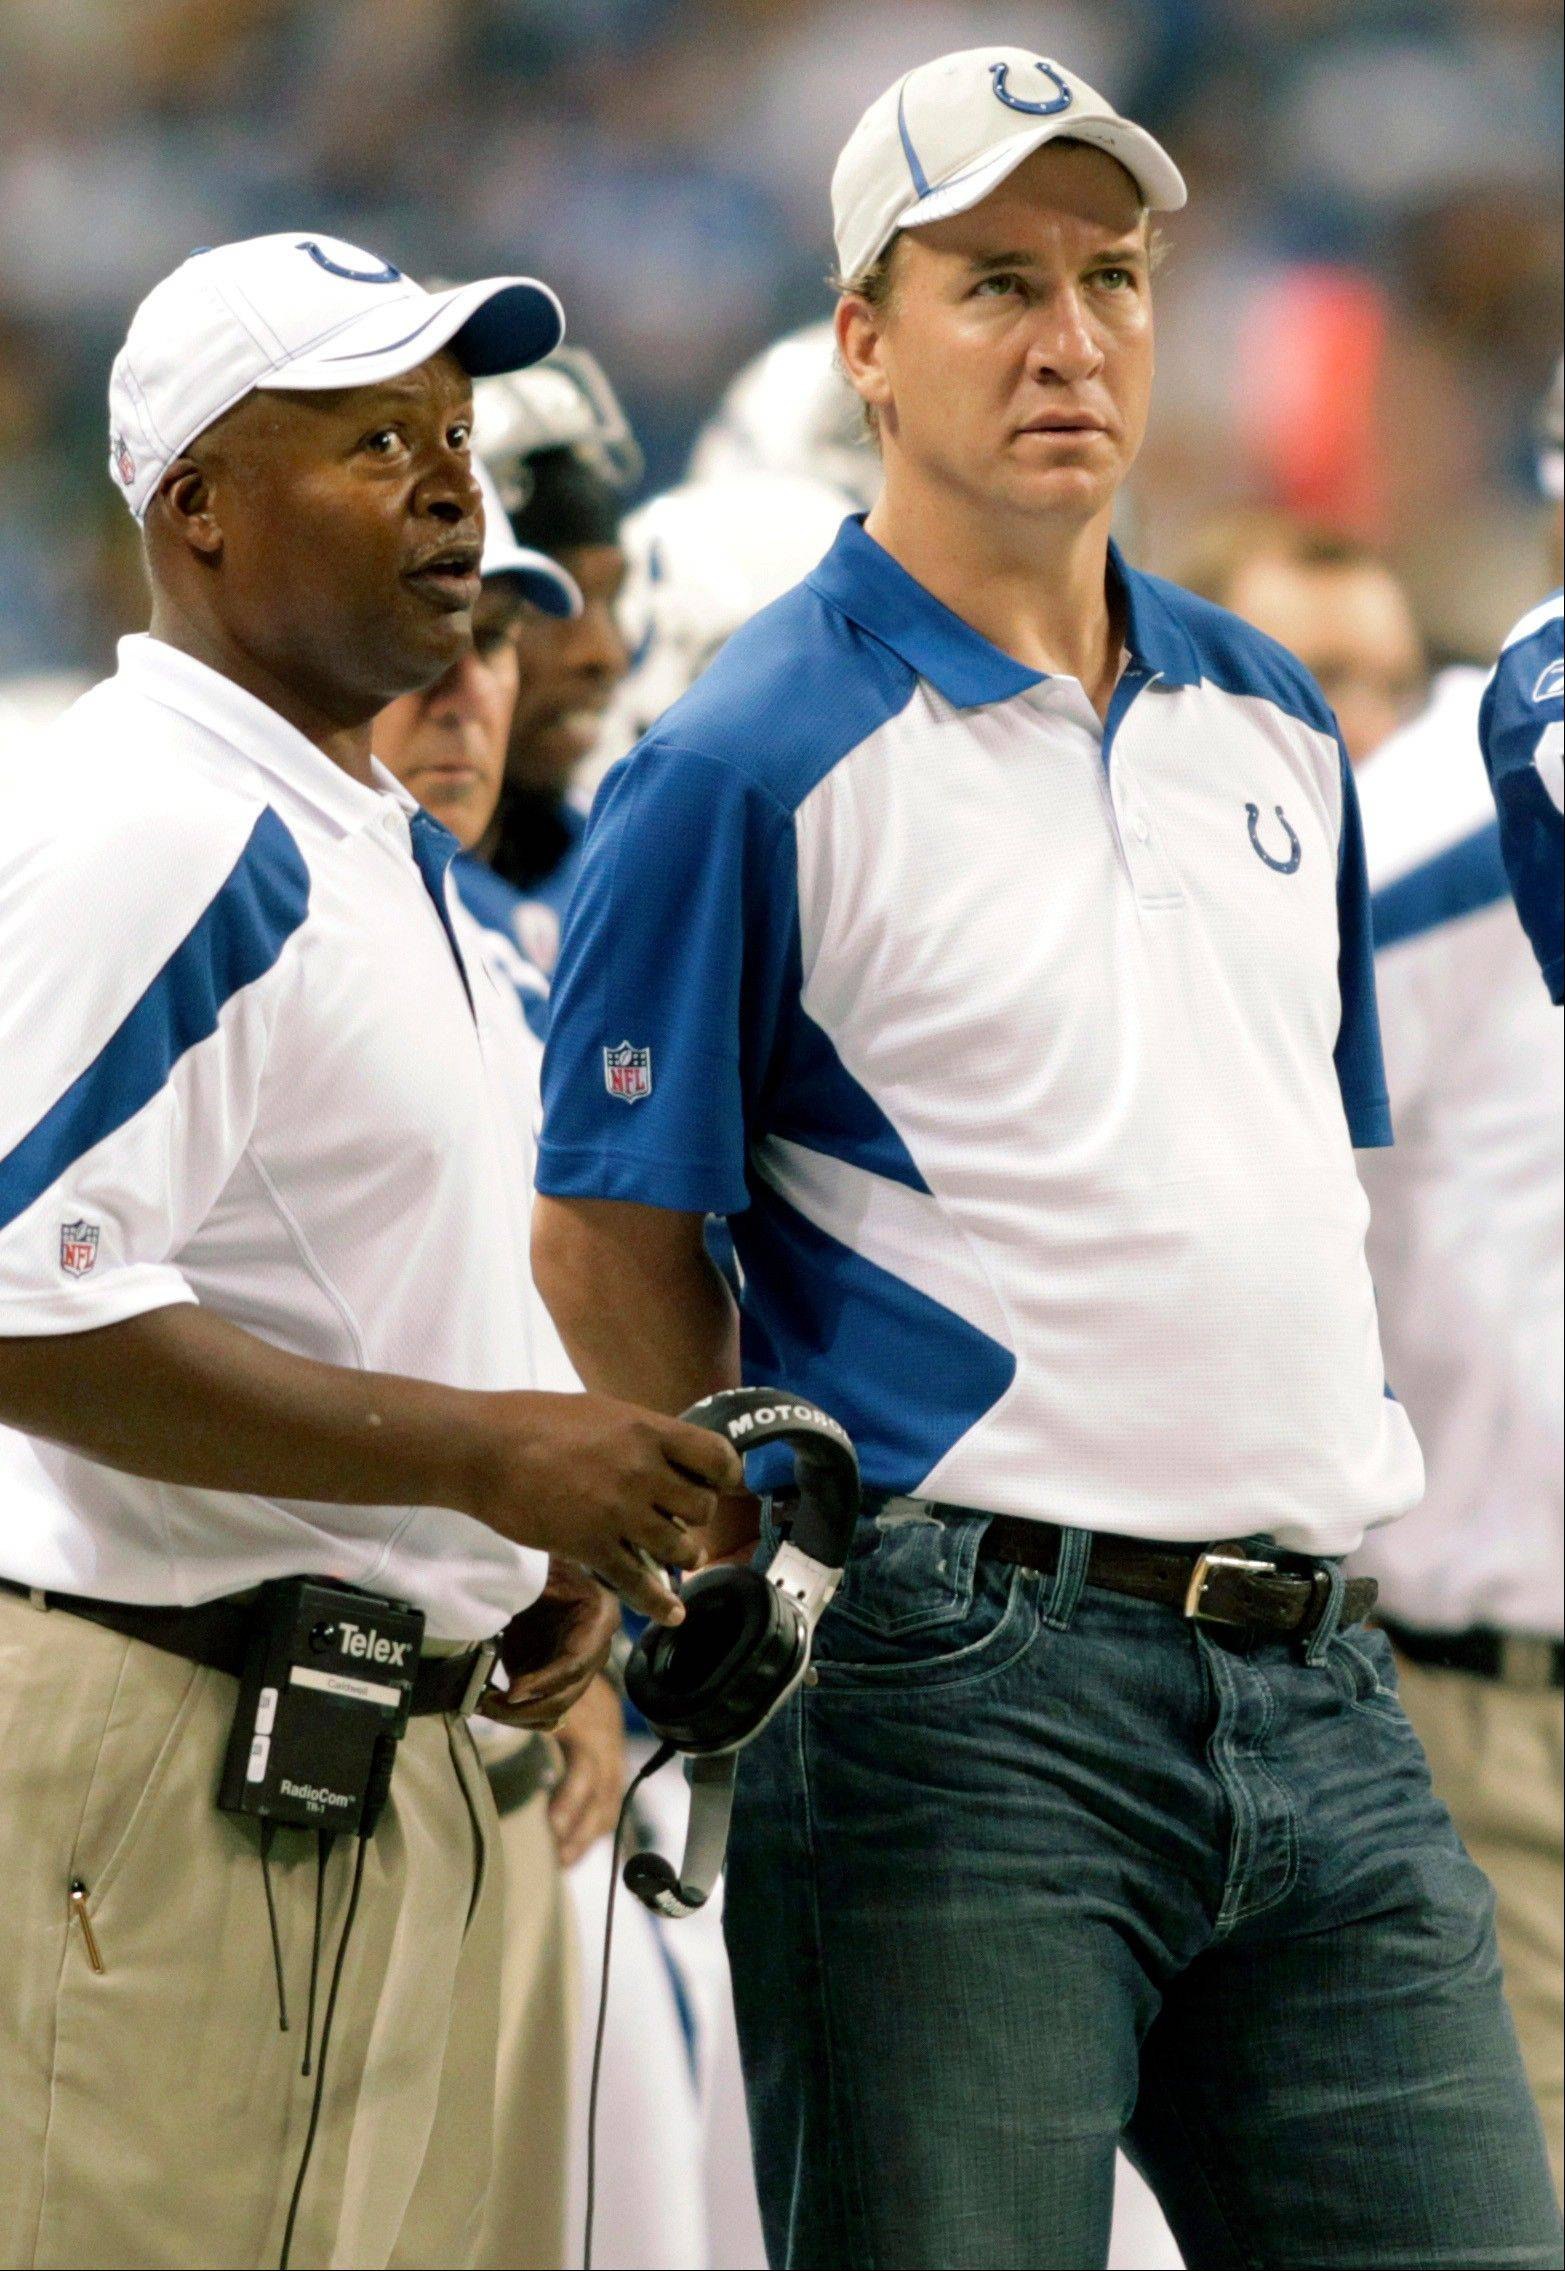 Indianapolis Colts quarterback Peyton Manning will not play Sunday in the season opener at Houston, bringing an end to his streak of 227 consecutive starts, including the playoffs. The team said 38-year-old Kerry Collins will start against the Texans as Manning continues his long recovery from neck surgery in May.